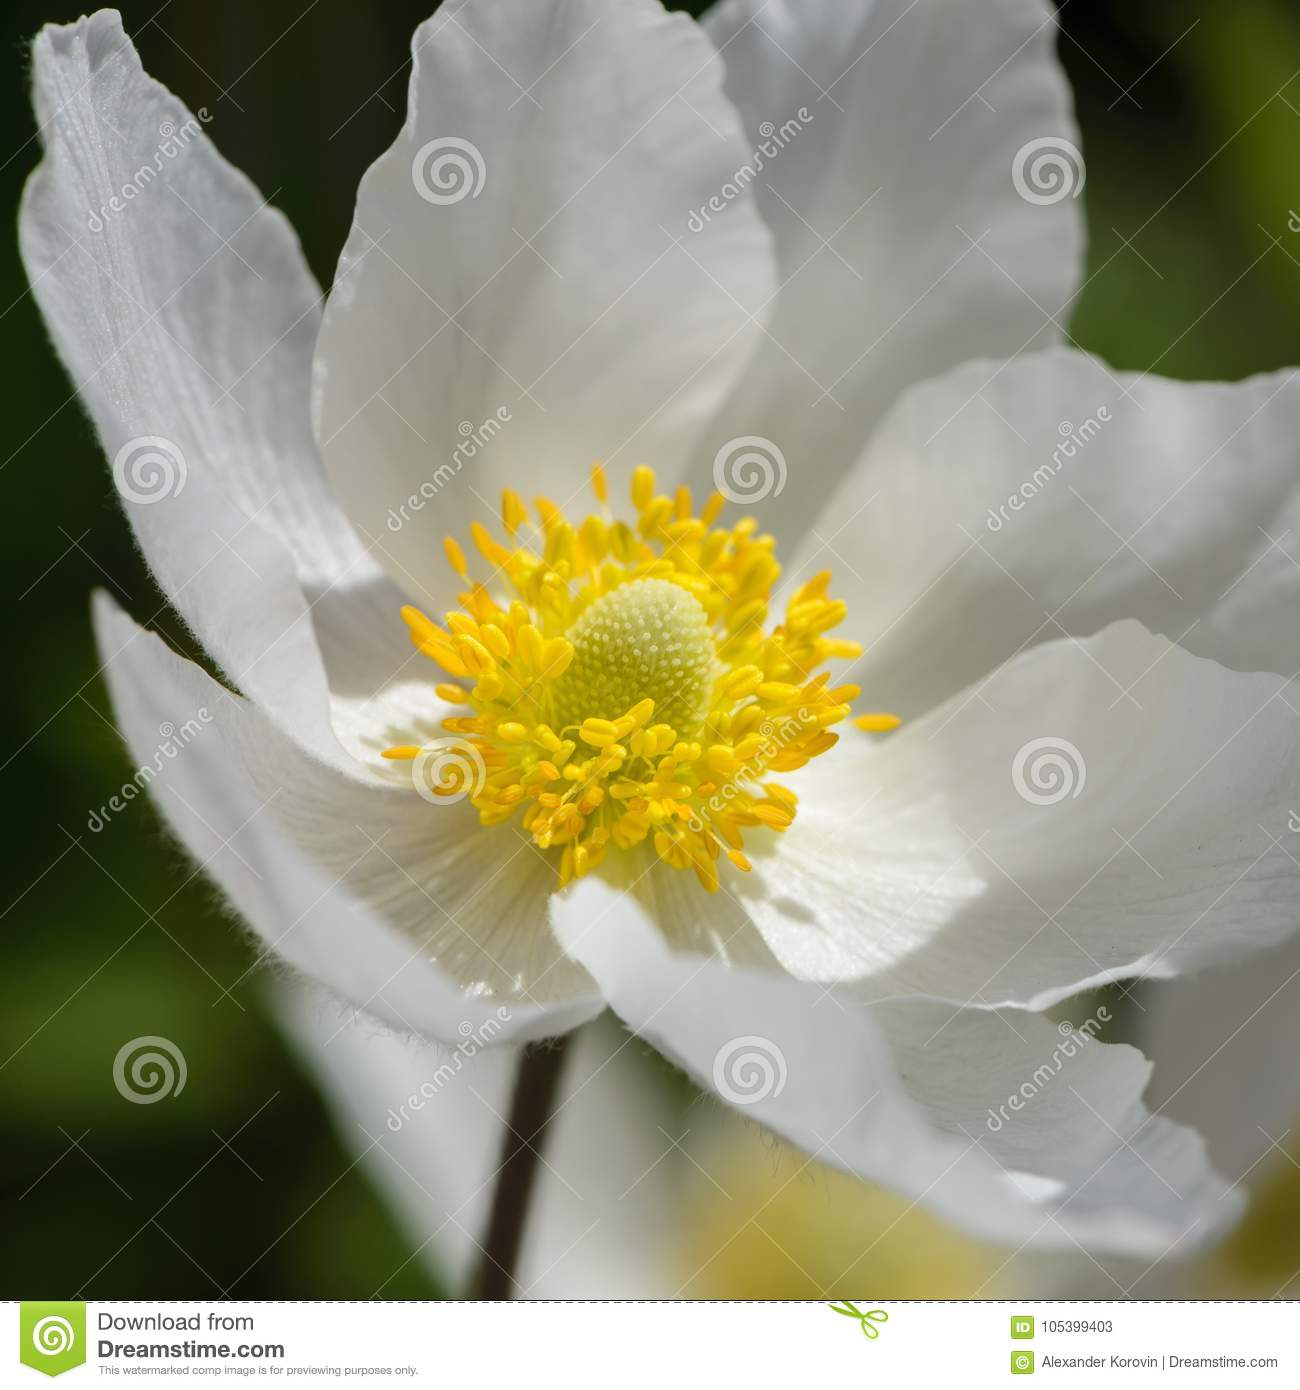 Snowdrop Anemone Blossom Large White Flower With Yellow Stamen